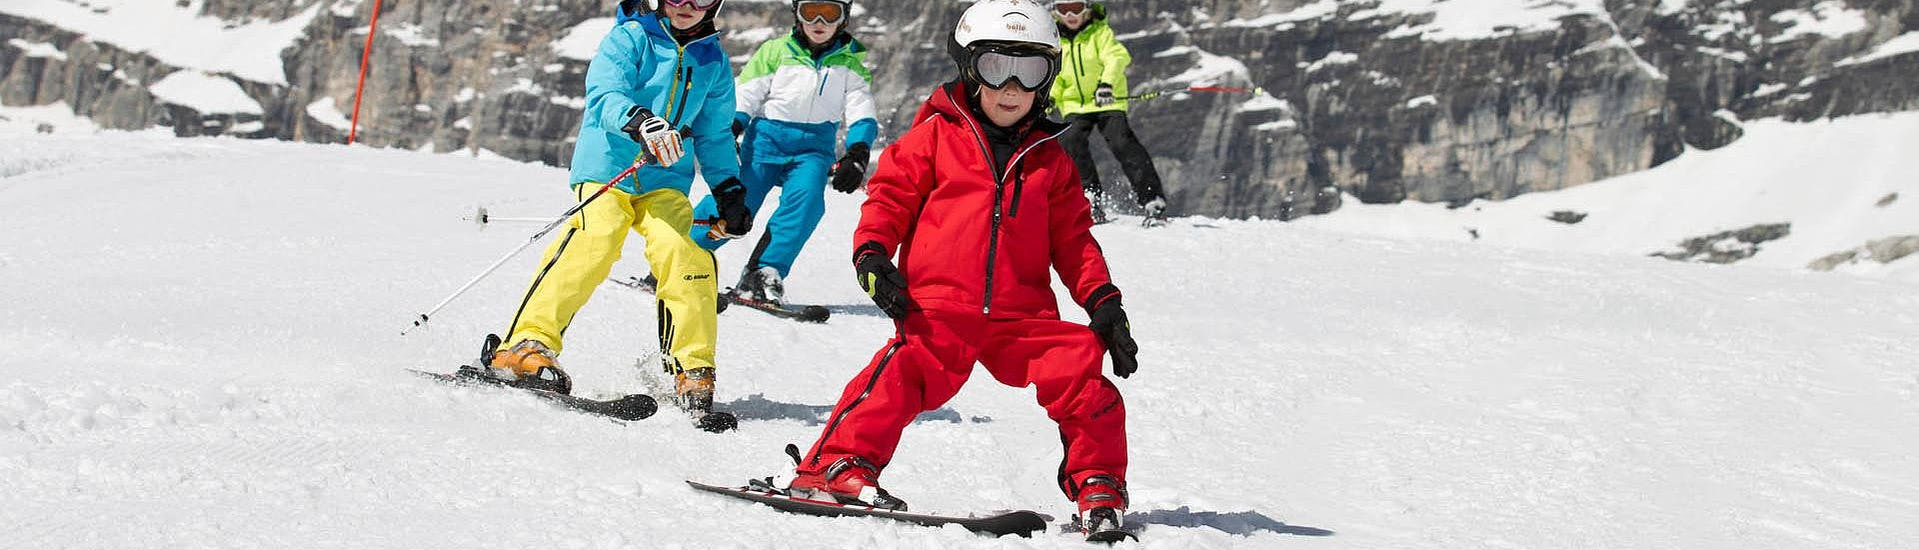 Skiing Lessons for Kids (4-12 years) - All Levels with Skischule Egon Hirt - Hero image